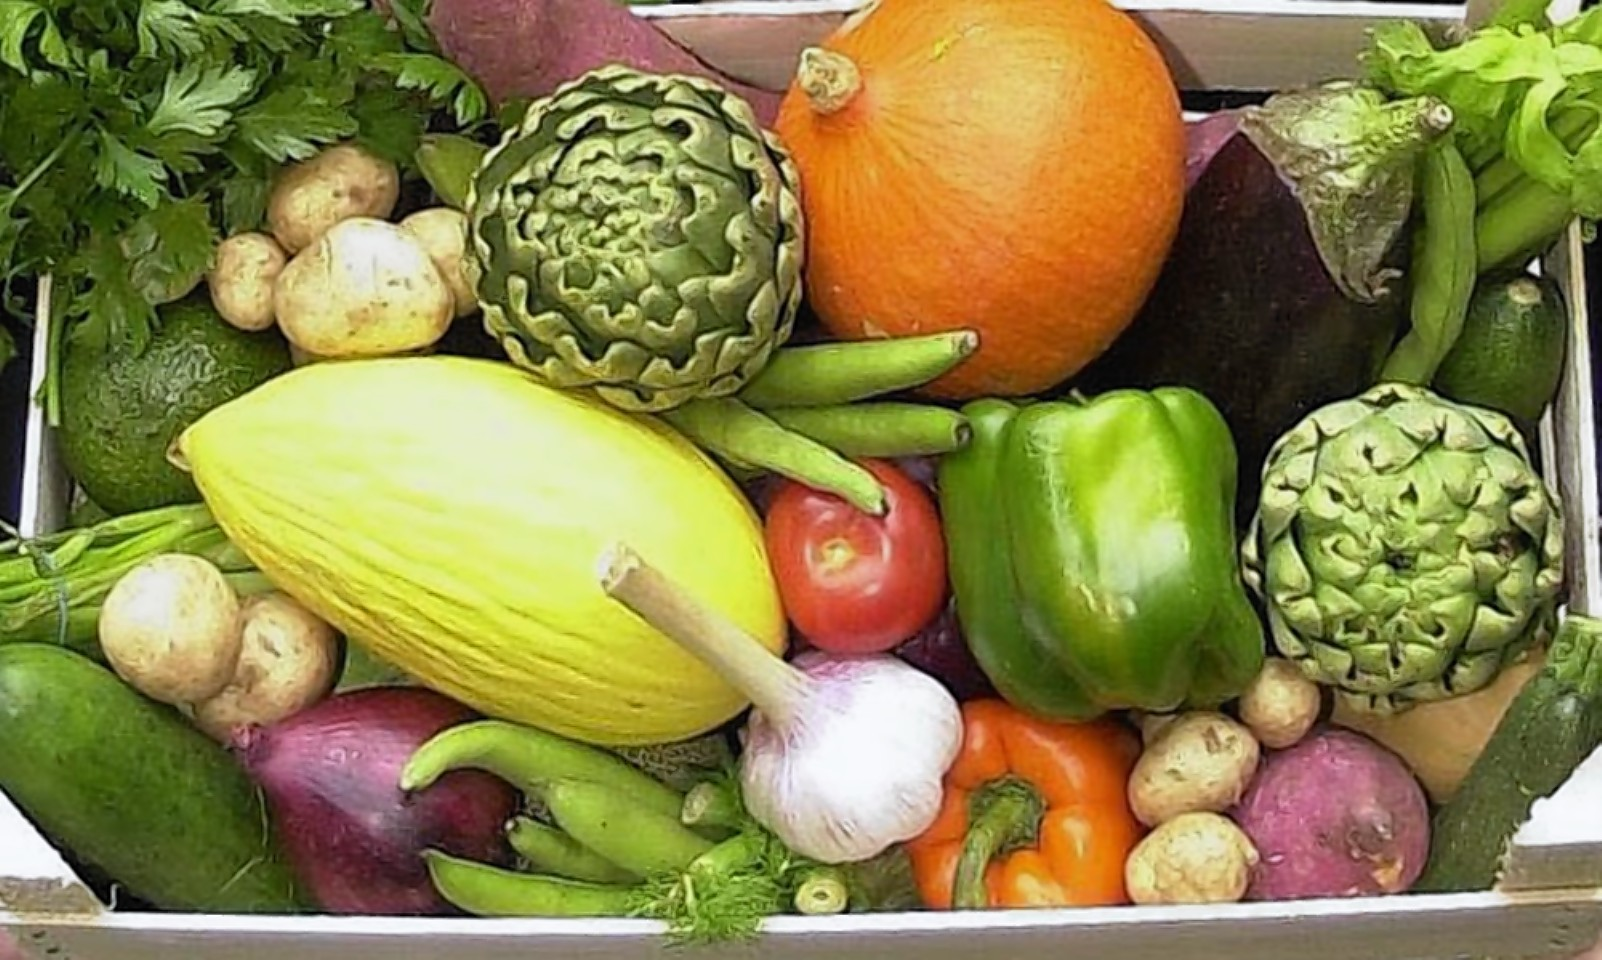 Government is being urged to give more support to organics